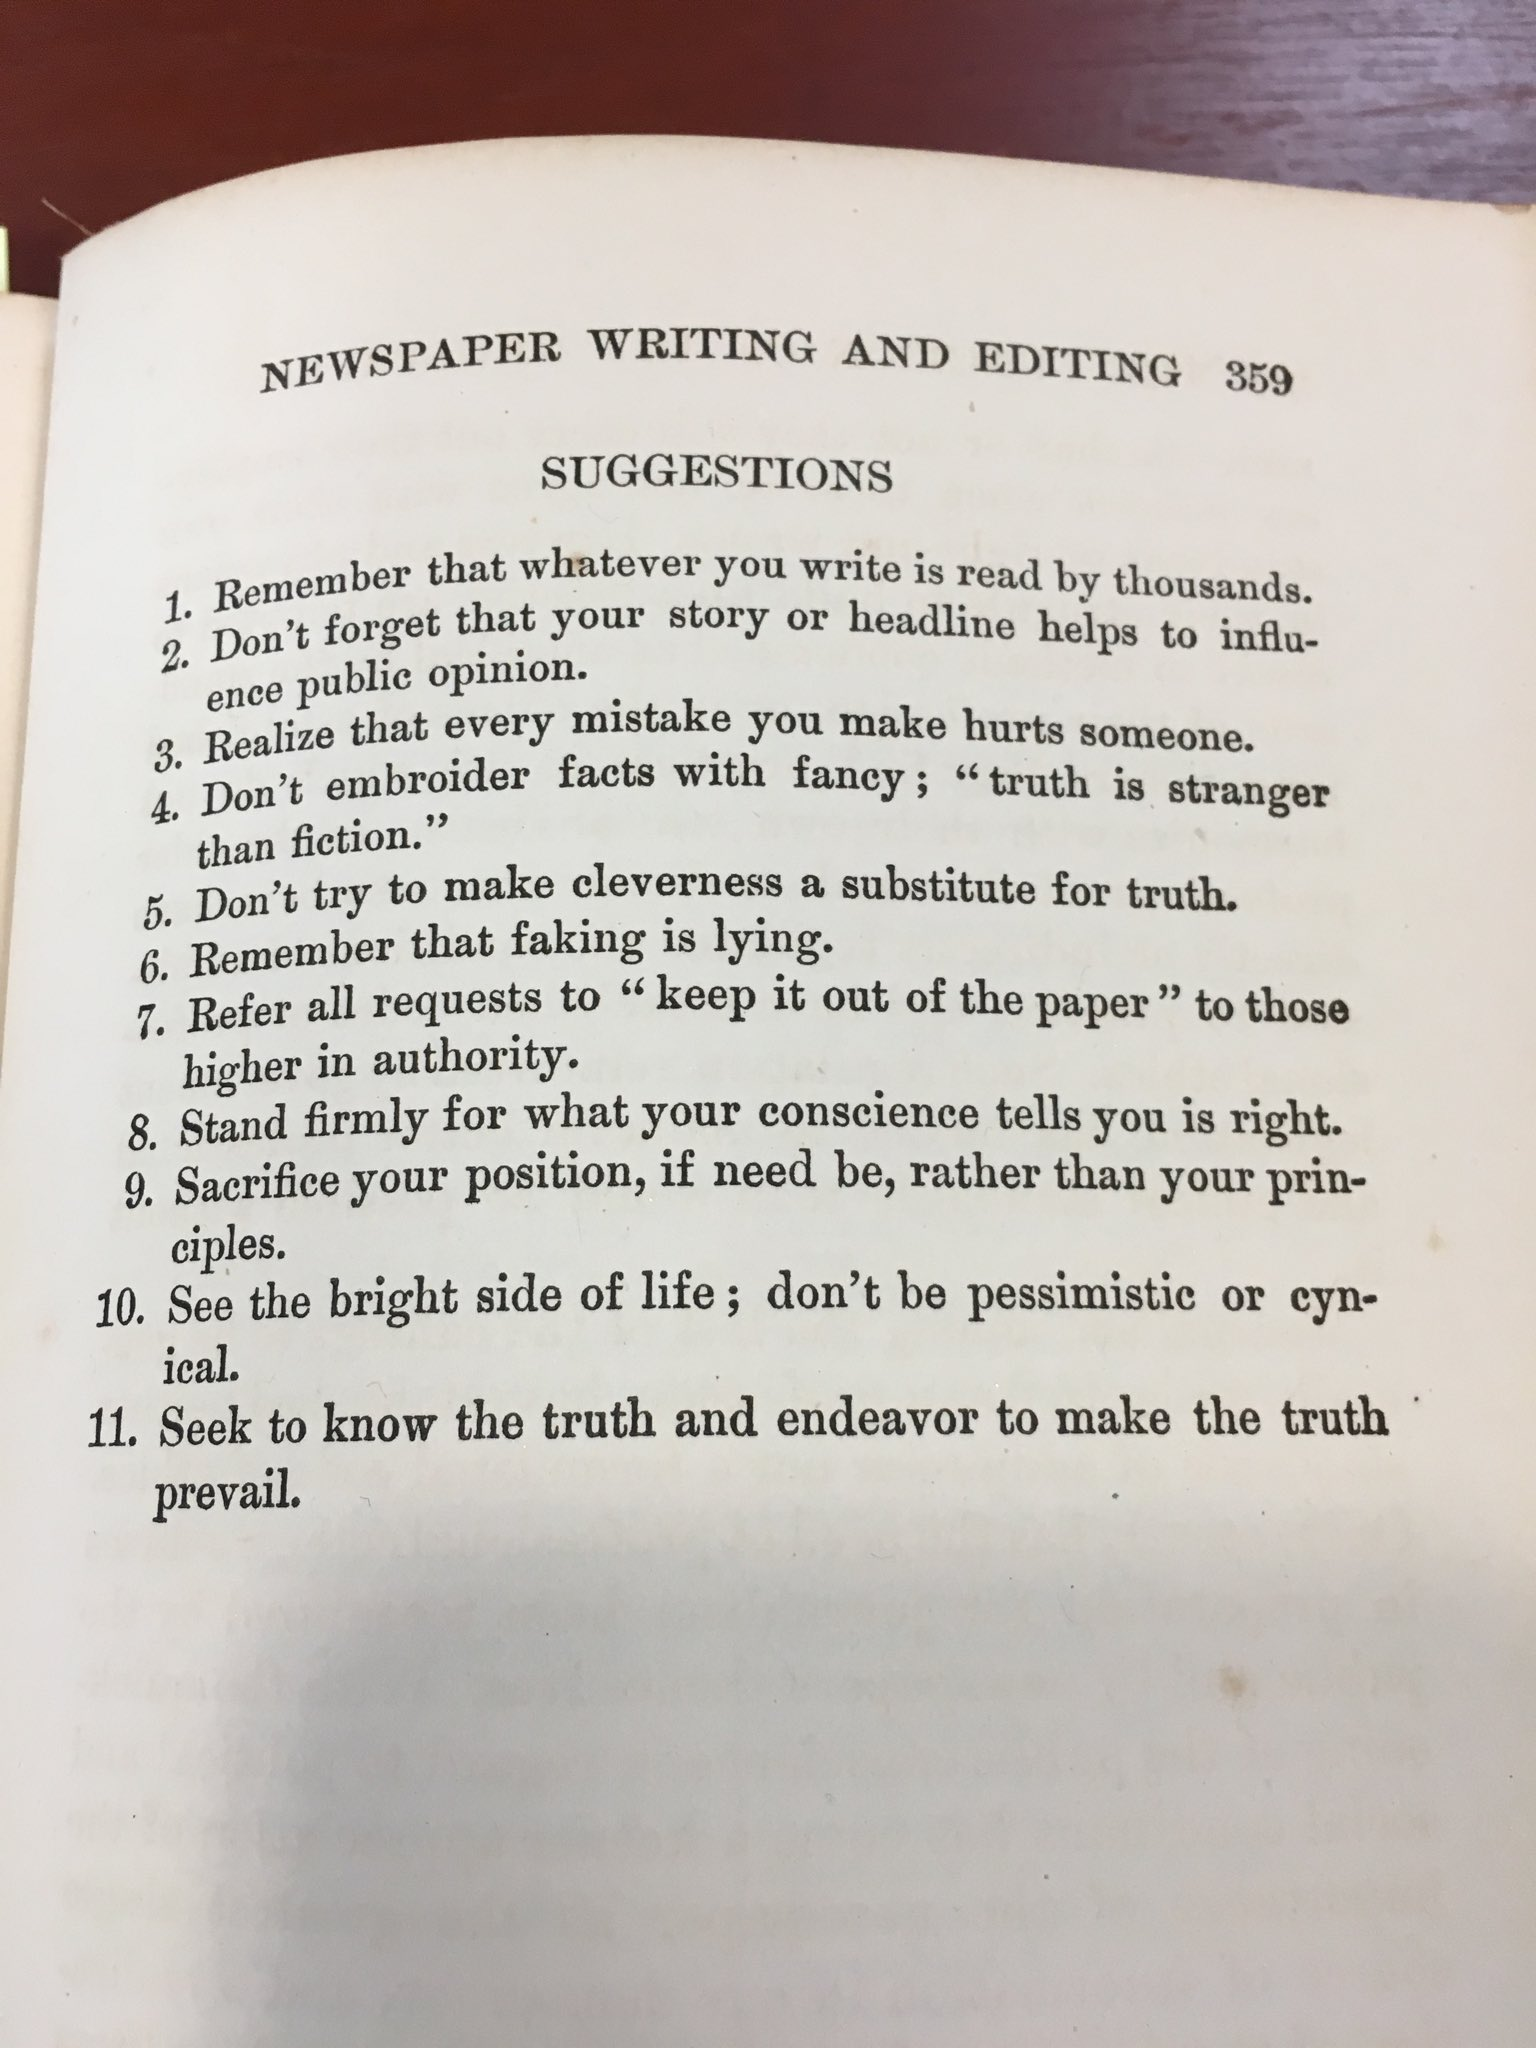 Not sure I have seen a better list of journalism standards and practices. More remarkable, it was published in 1913 by Willard Bleyer, the final words of his college textbook. He was chair at Wisconsin. This is where craft meets mission and purpose. 1913! https://t.co/L3vBOwk9aX